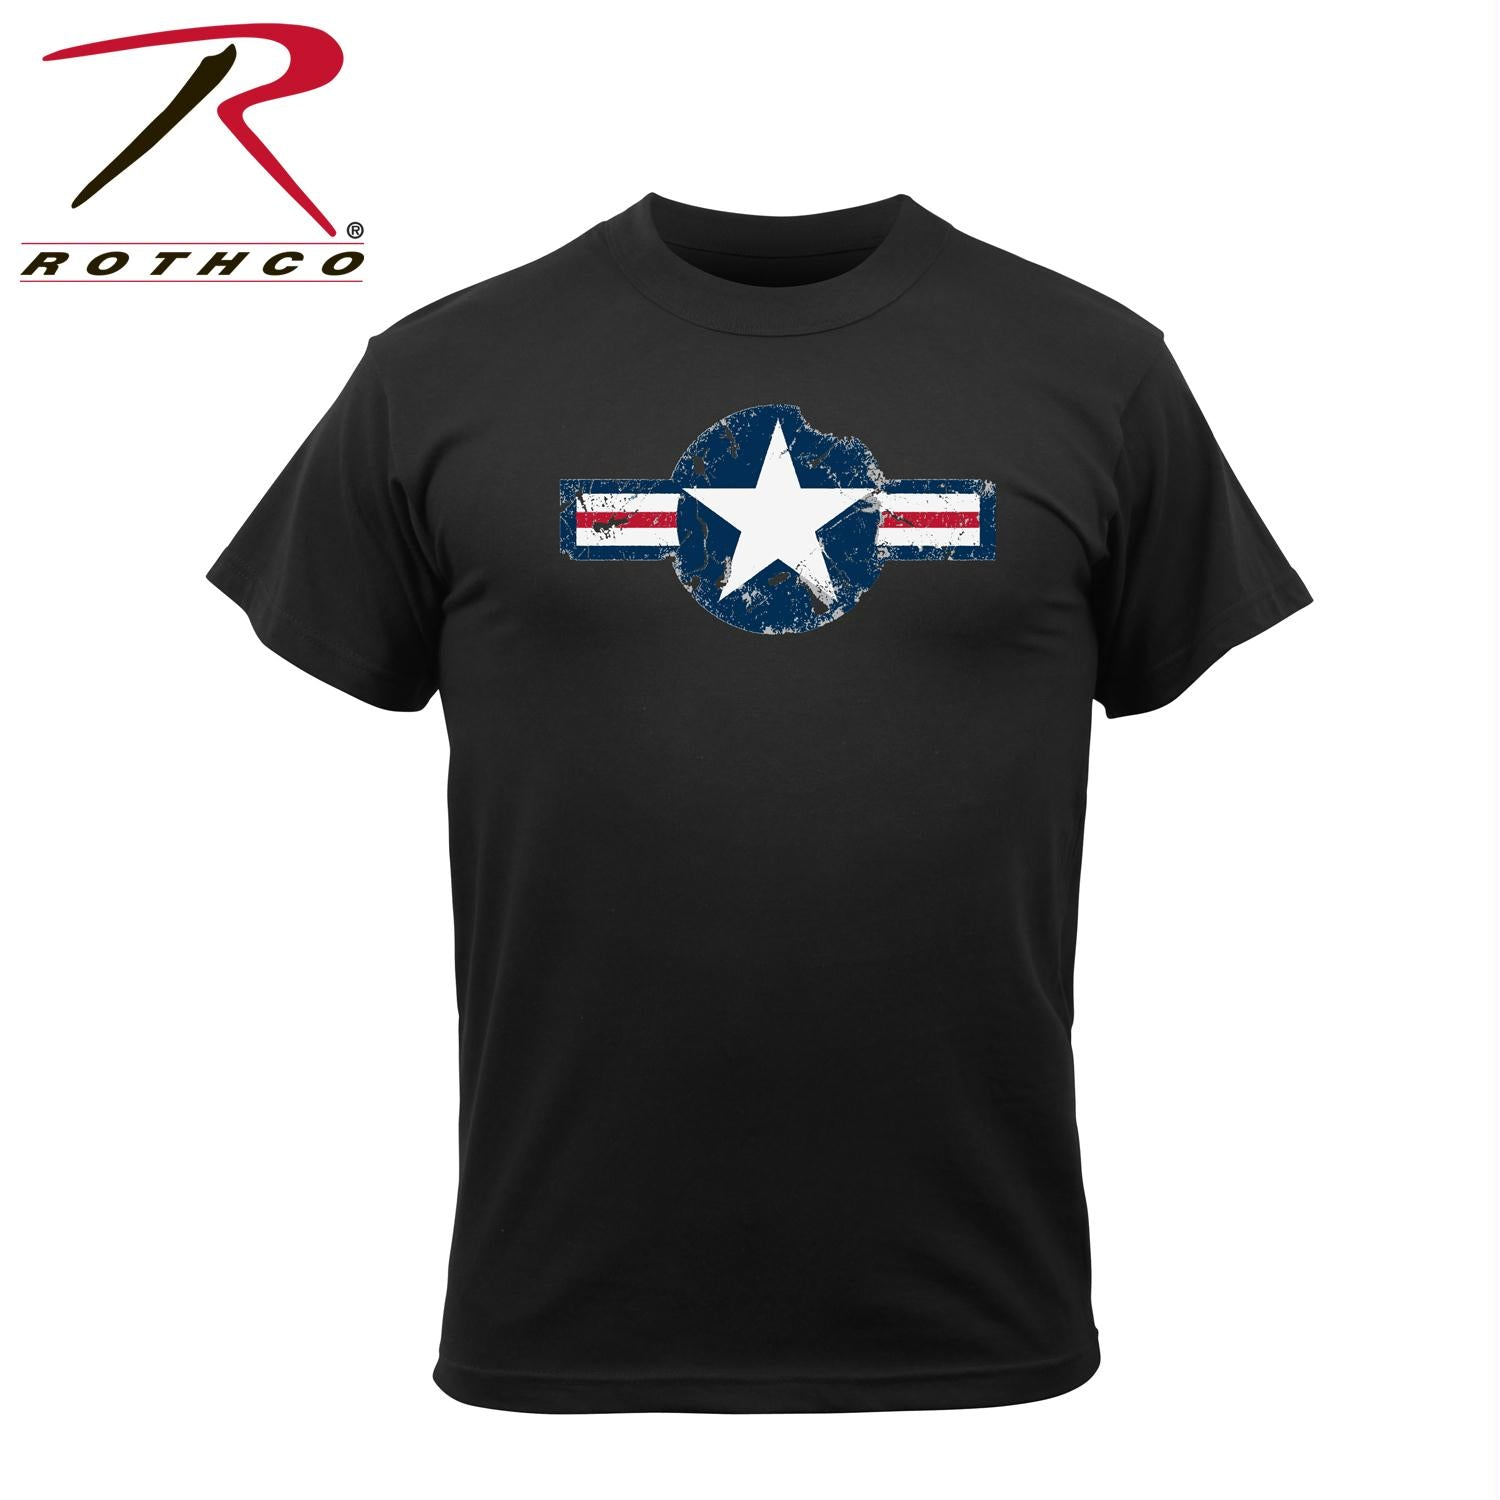 Rothco Vintage Army Air Corps T-Shirt - Black / S